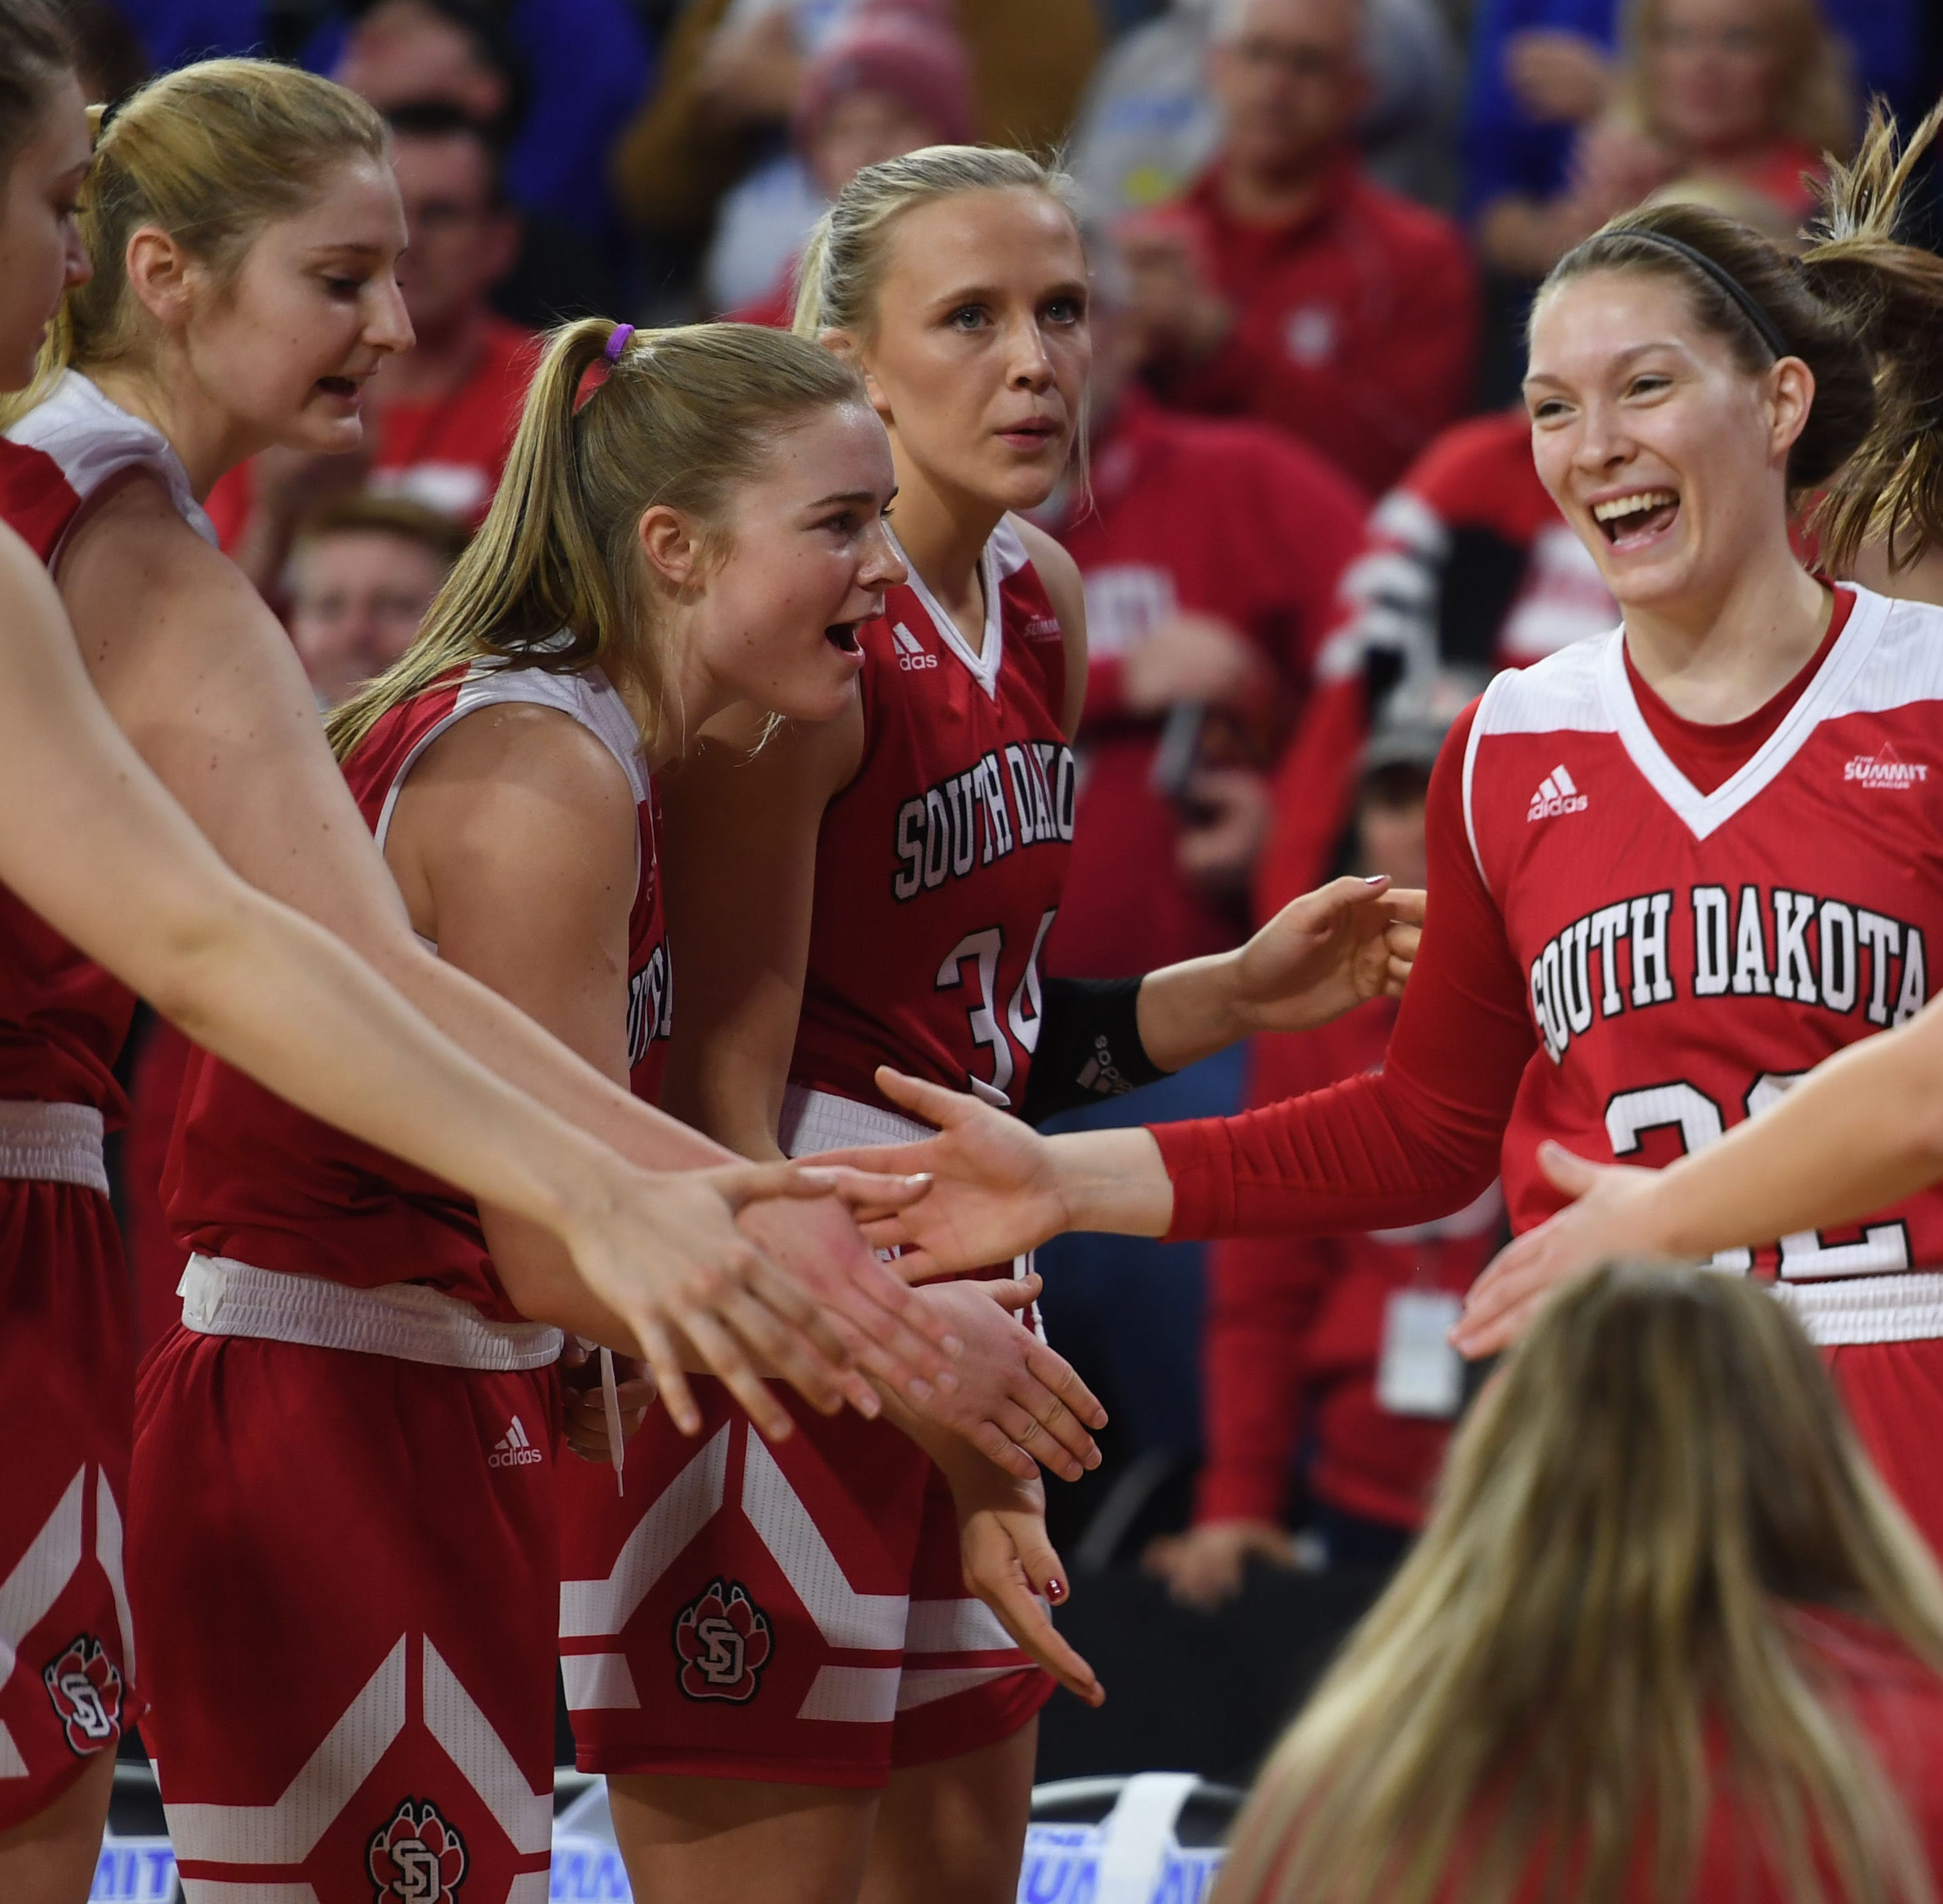 NCAA Women's Basketball Tournament: Live updates, how to watch South Dakota vs. Clemson